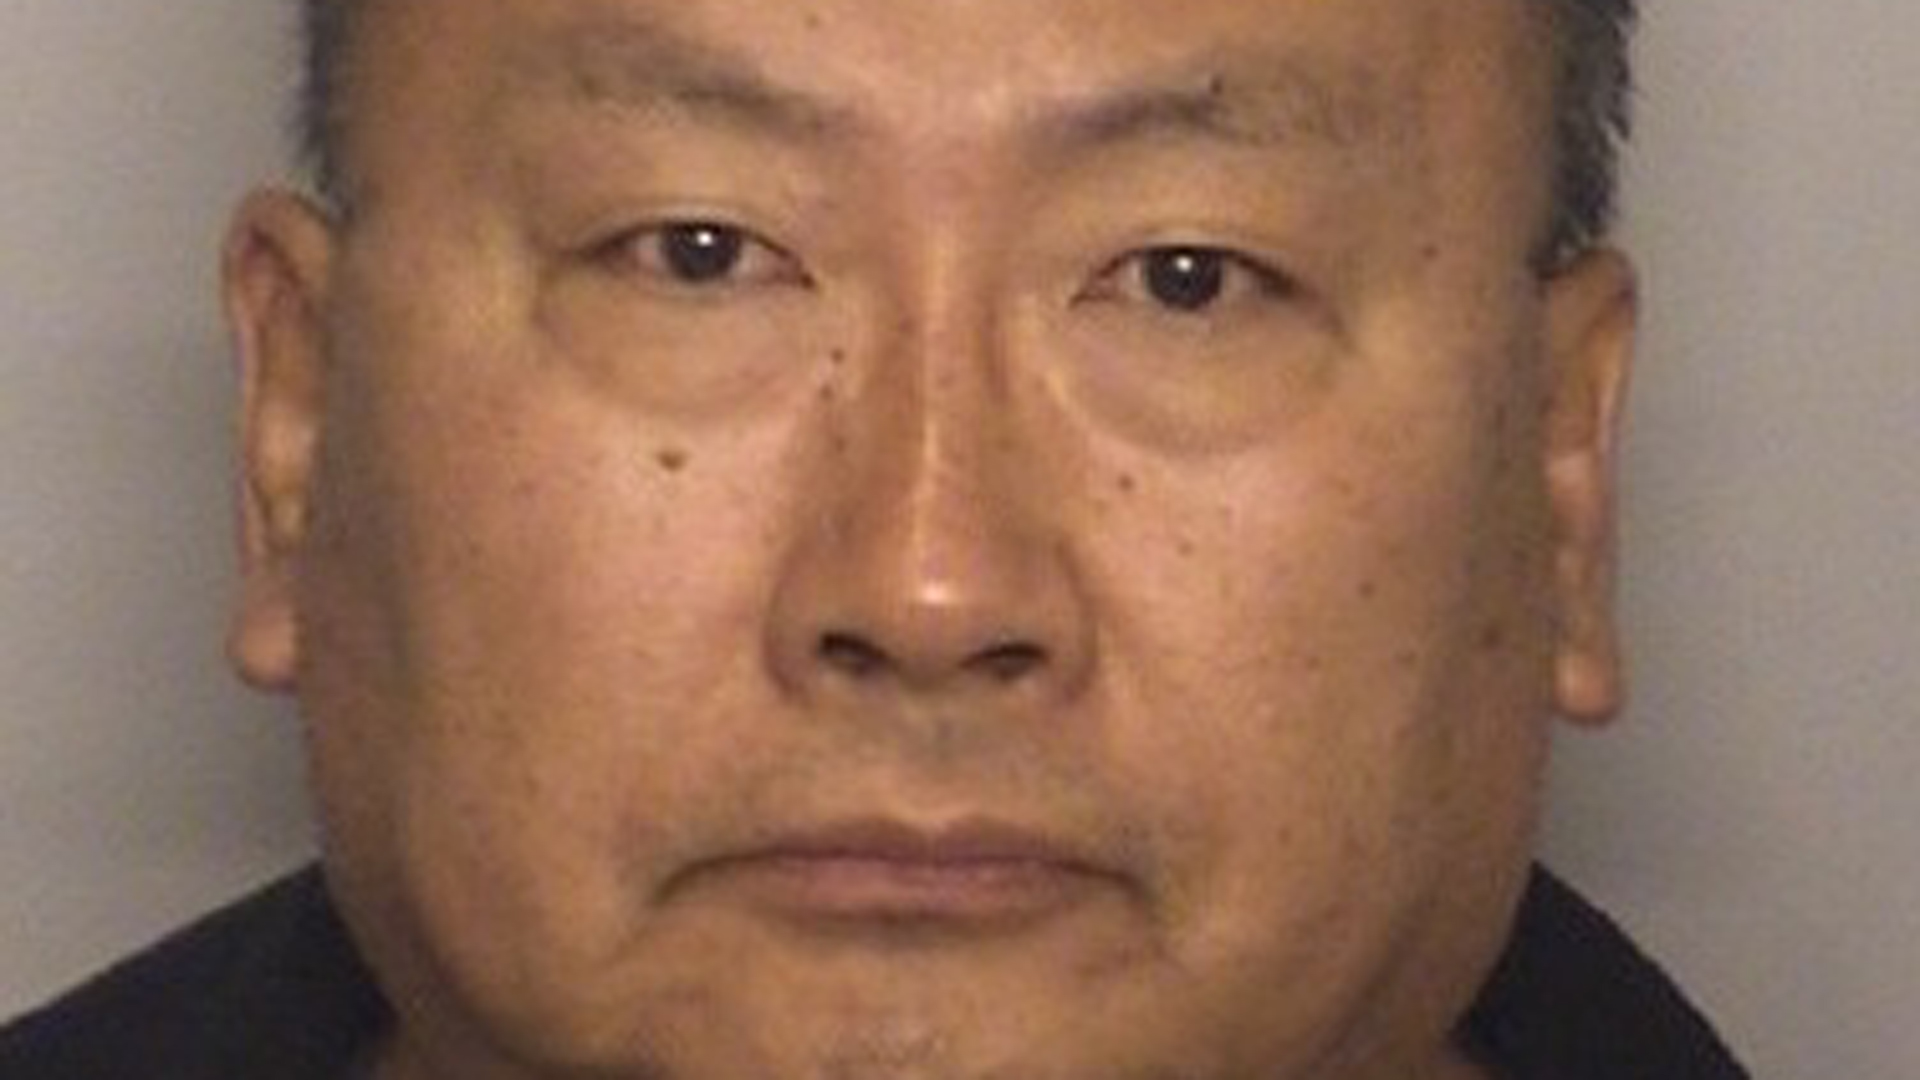 Xiang Zhao is seen in an image provided by the Fontana Police Department.